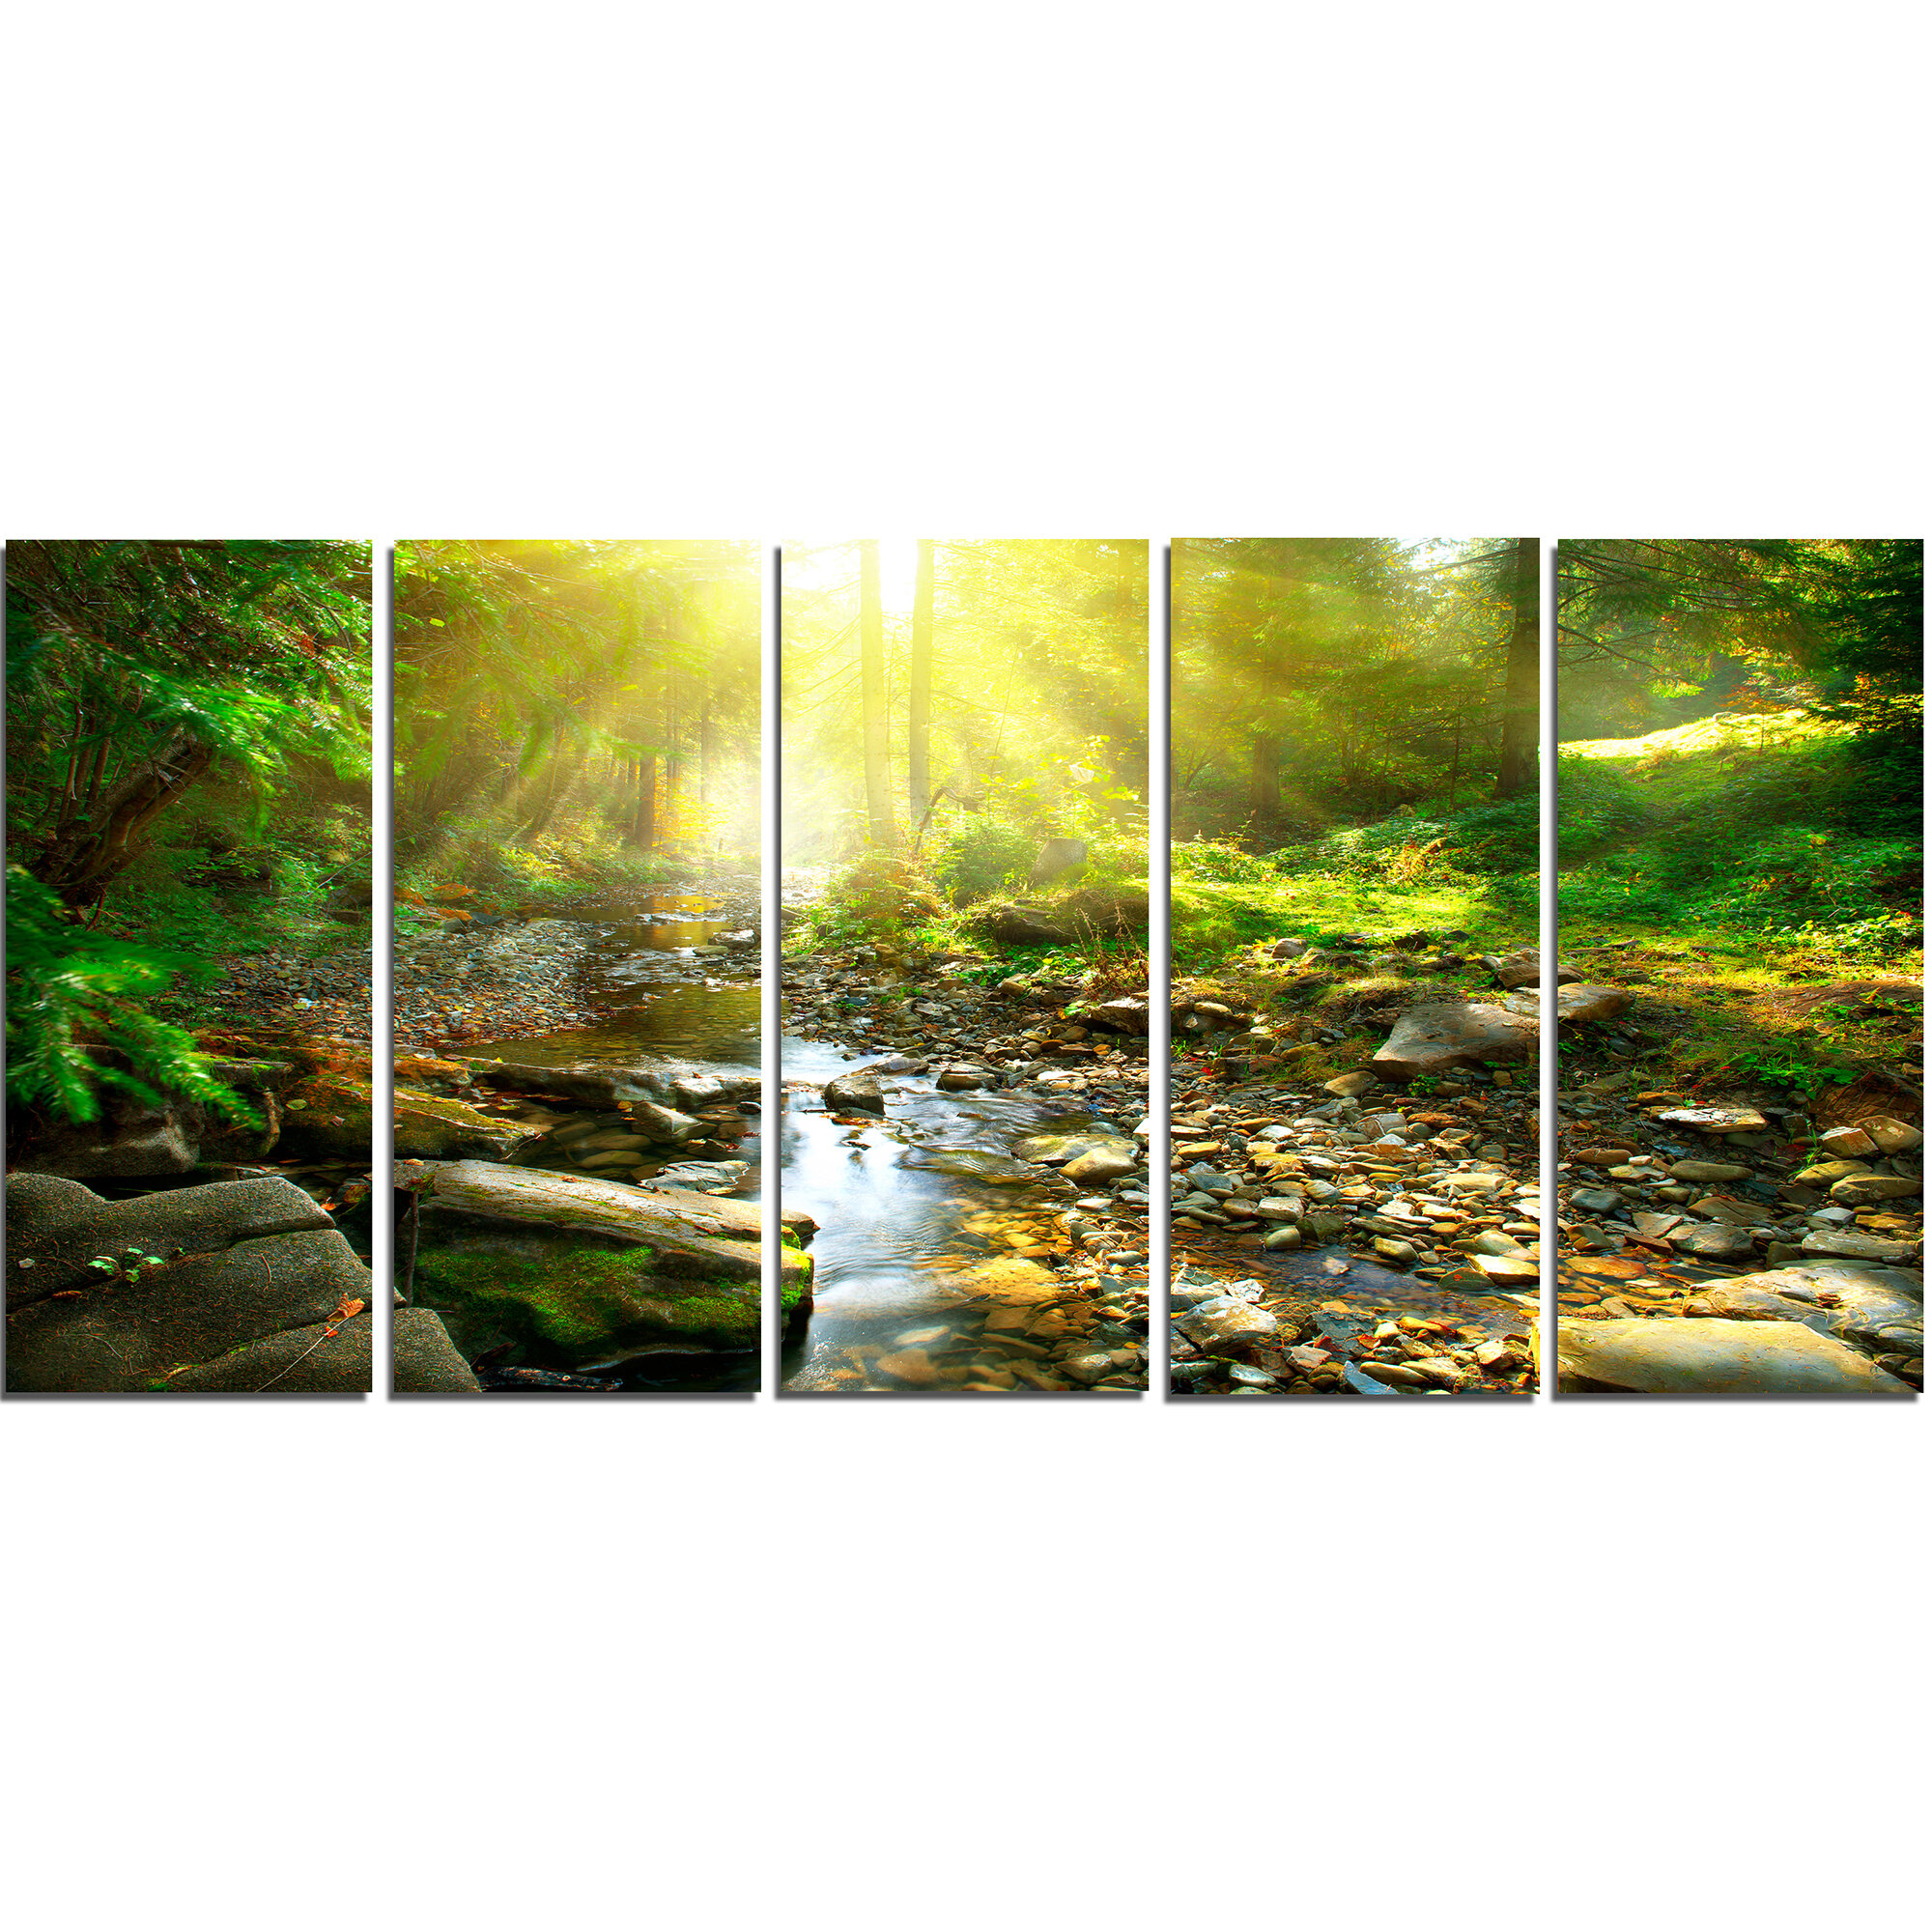 DesignArt Mountain Stream in Forest 5 Piece Wall Art on Wrapped ...